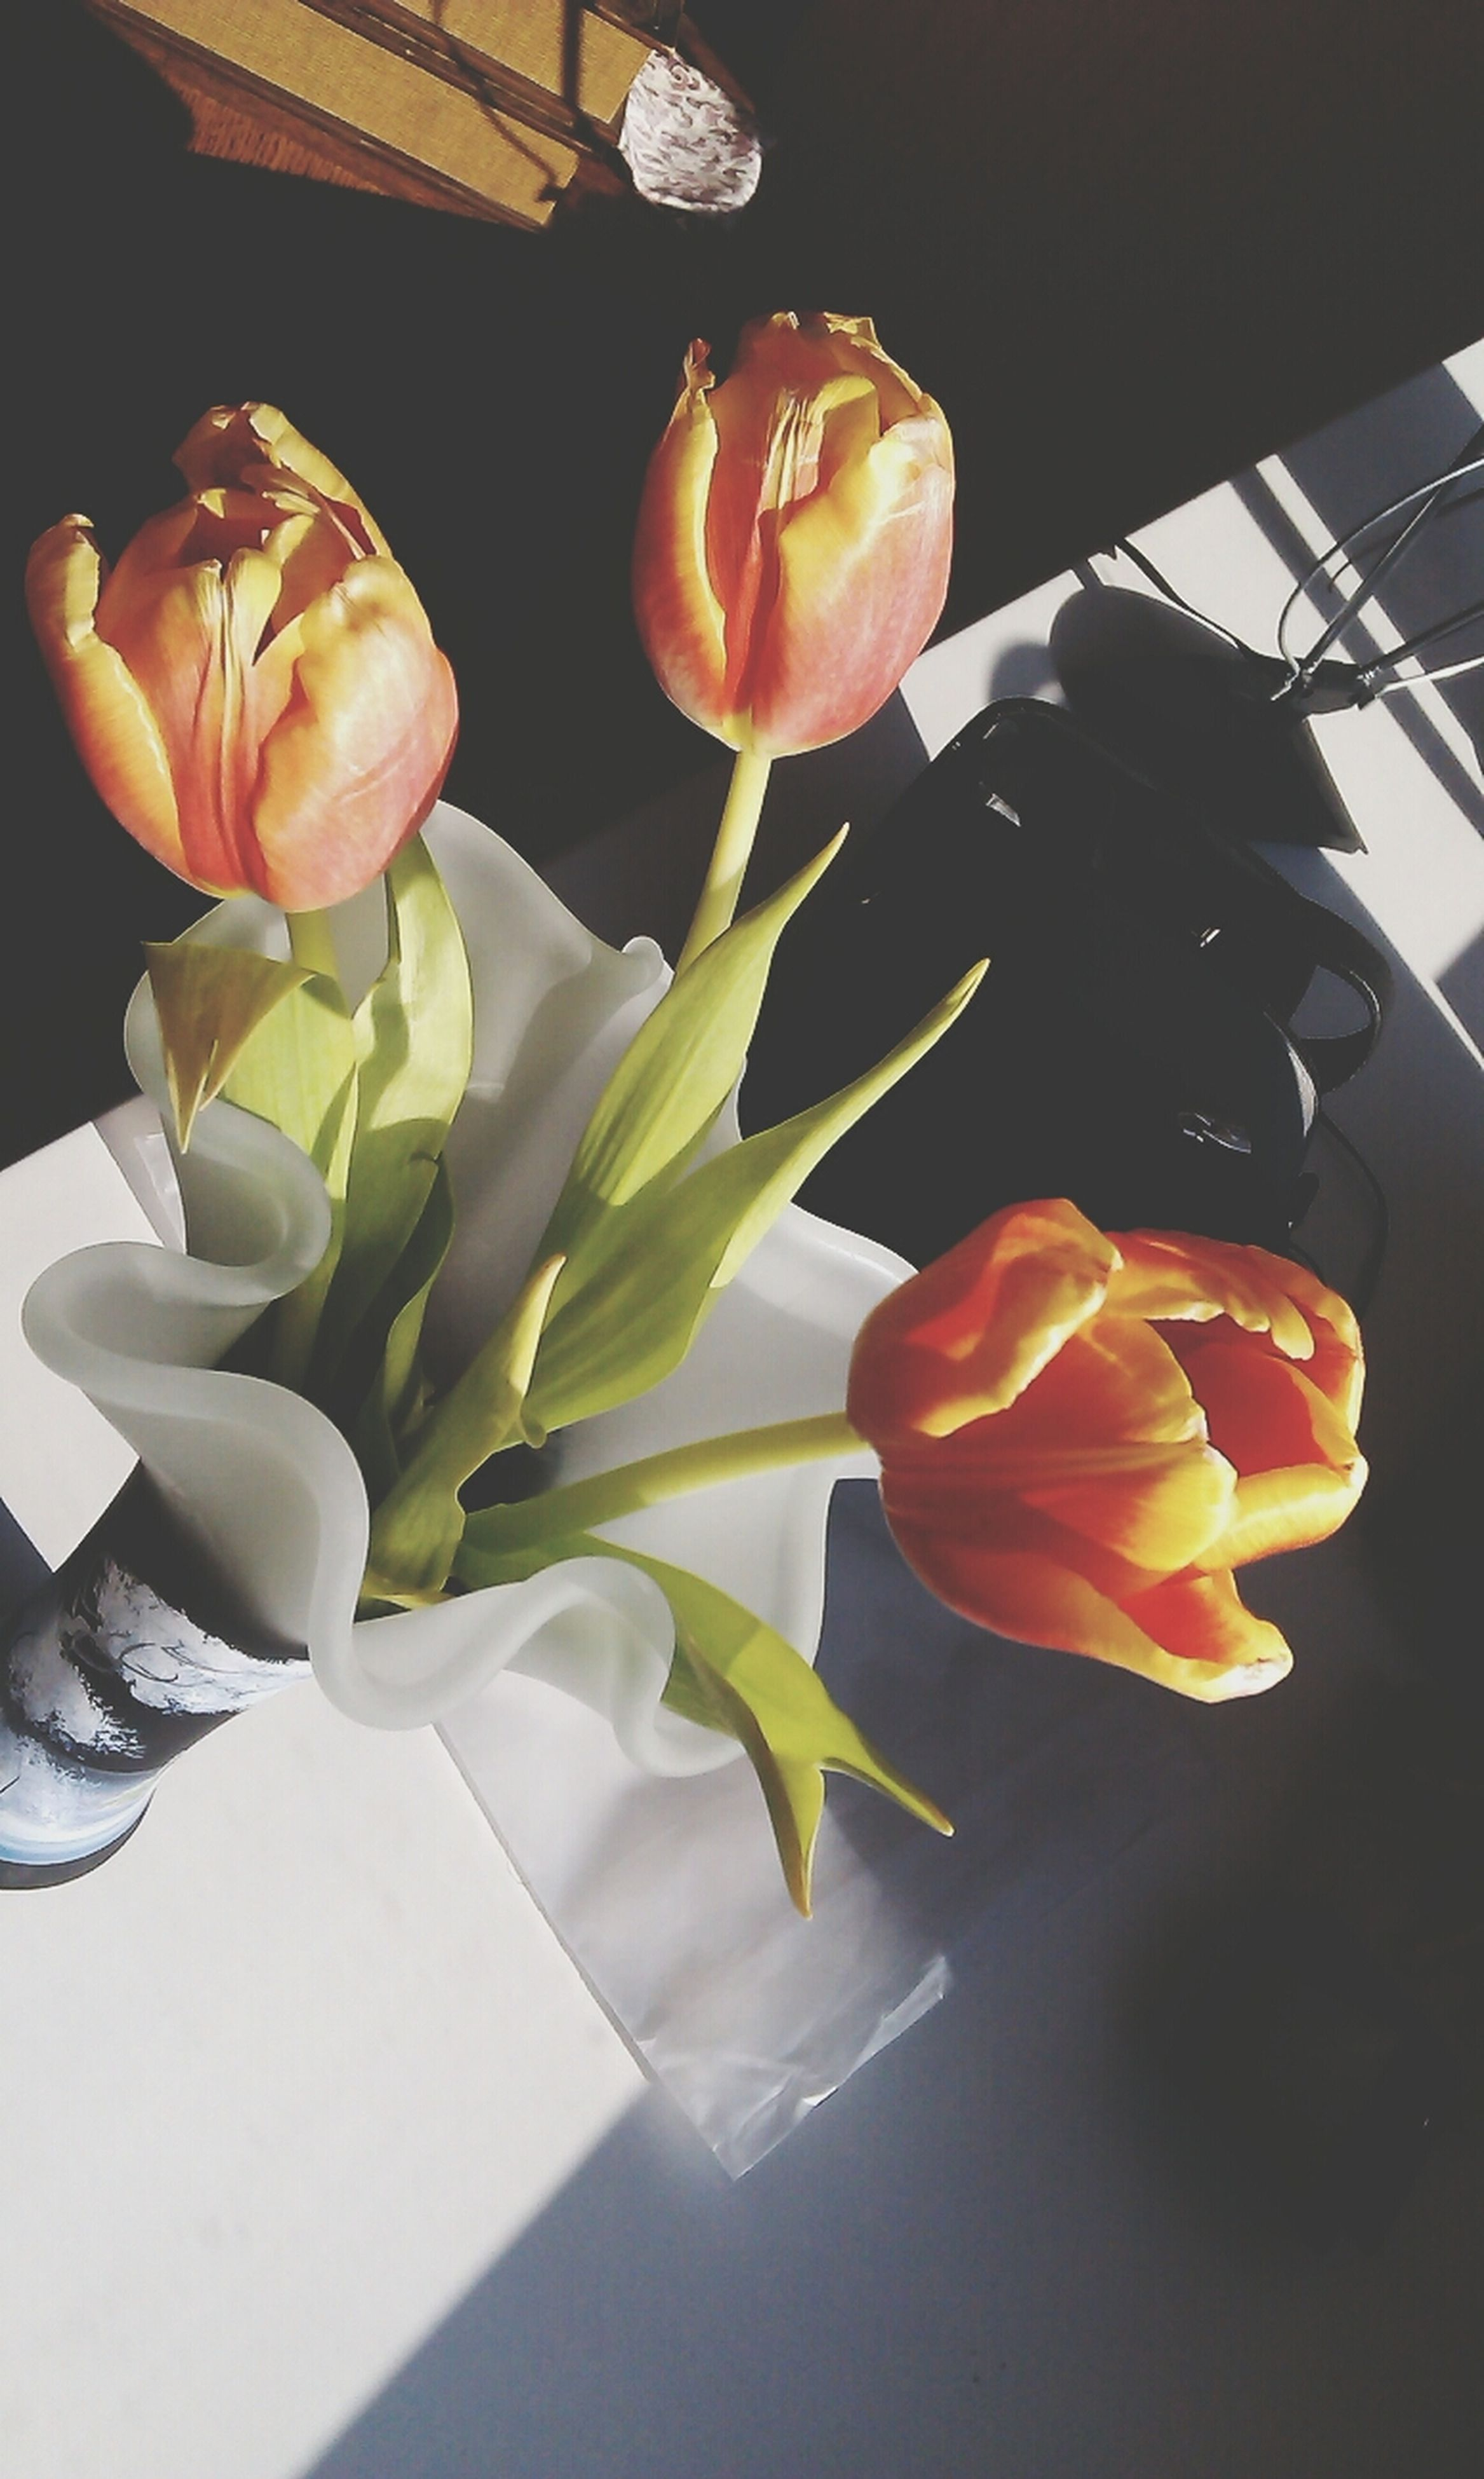 flower, petal, indoors, fragility, freshness, flower head, vase, close-up, rose - flower, plant, growth, table, red, nature, beauty in nature, leaf, stem, home interior, no people, decoration